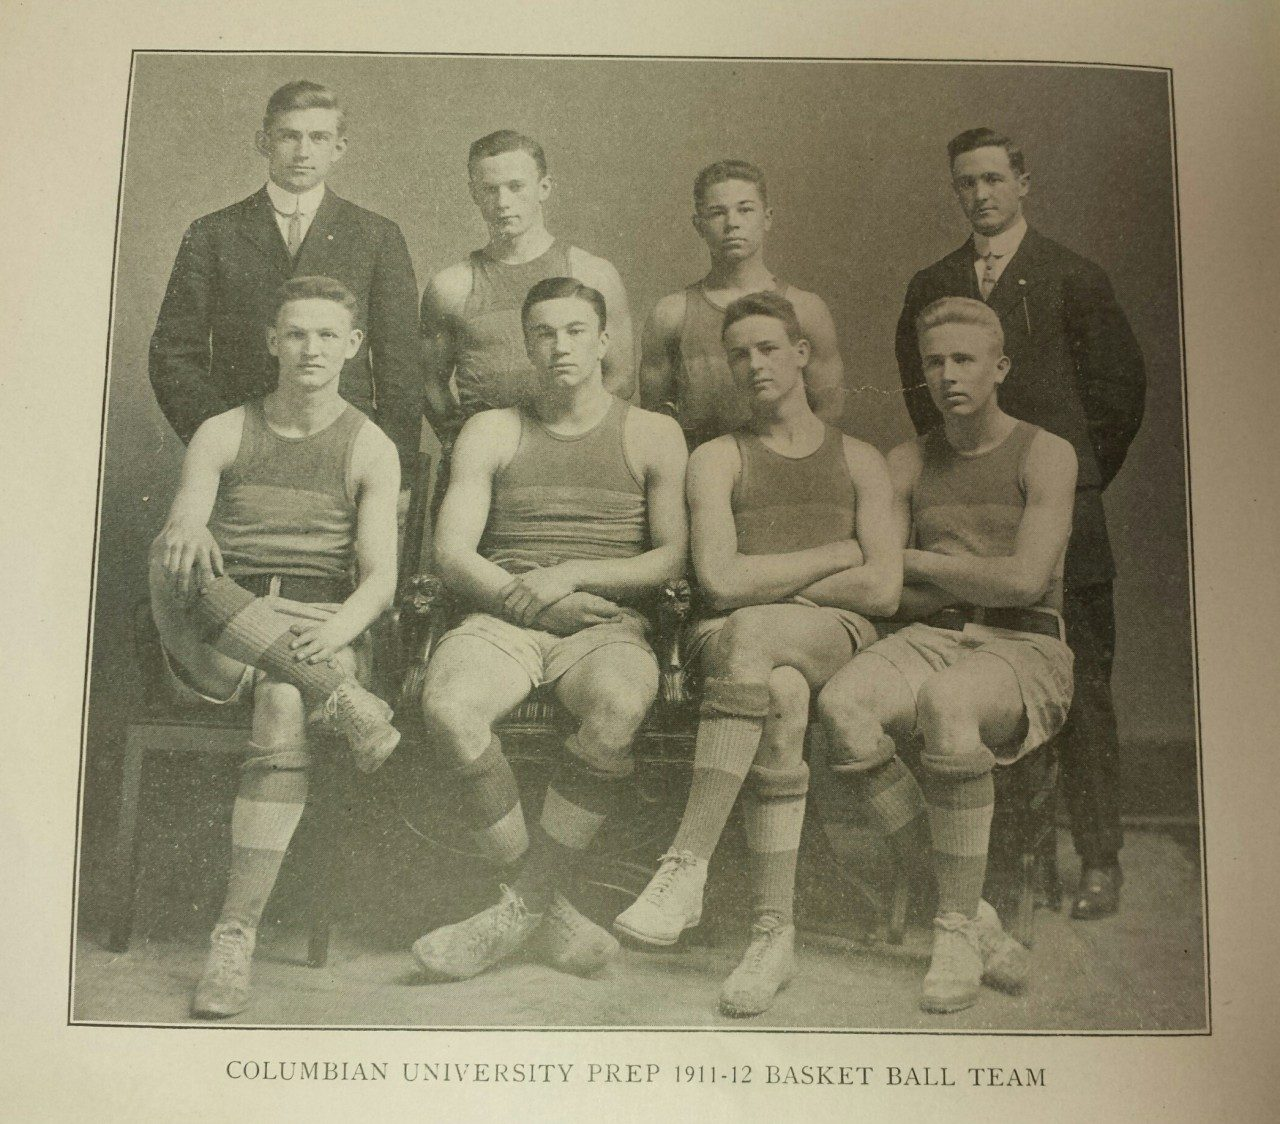 Columbia Preparatory School Basketball Team, 1911-12; Rudolph (Rudy) Scholz, 3rd from left in the back row (Columbiad, April 1912; University Museum photo)